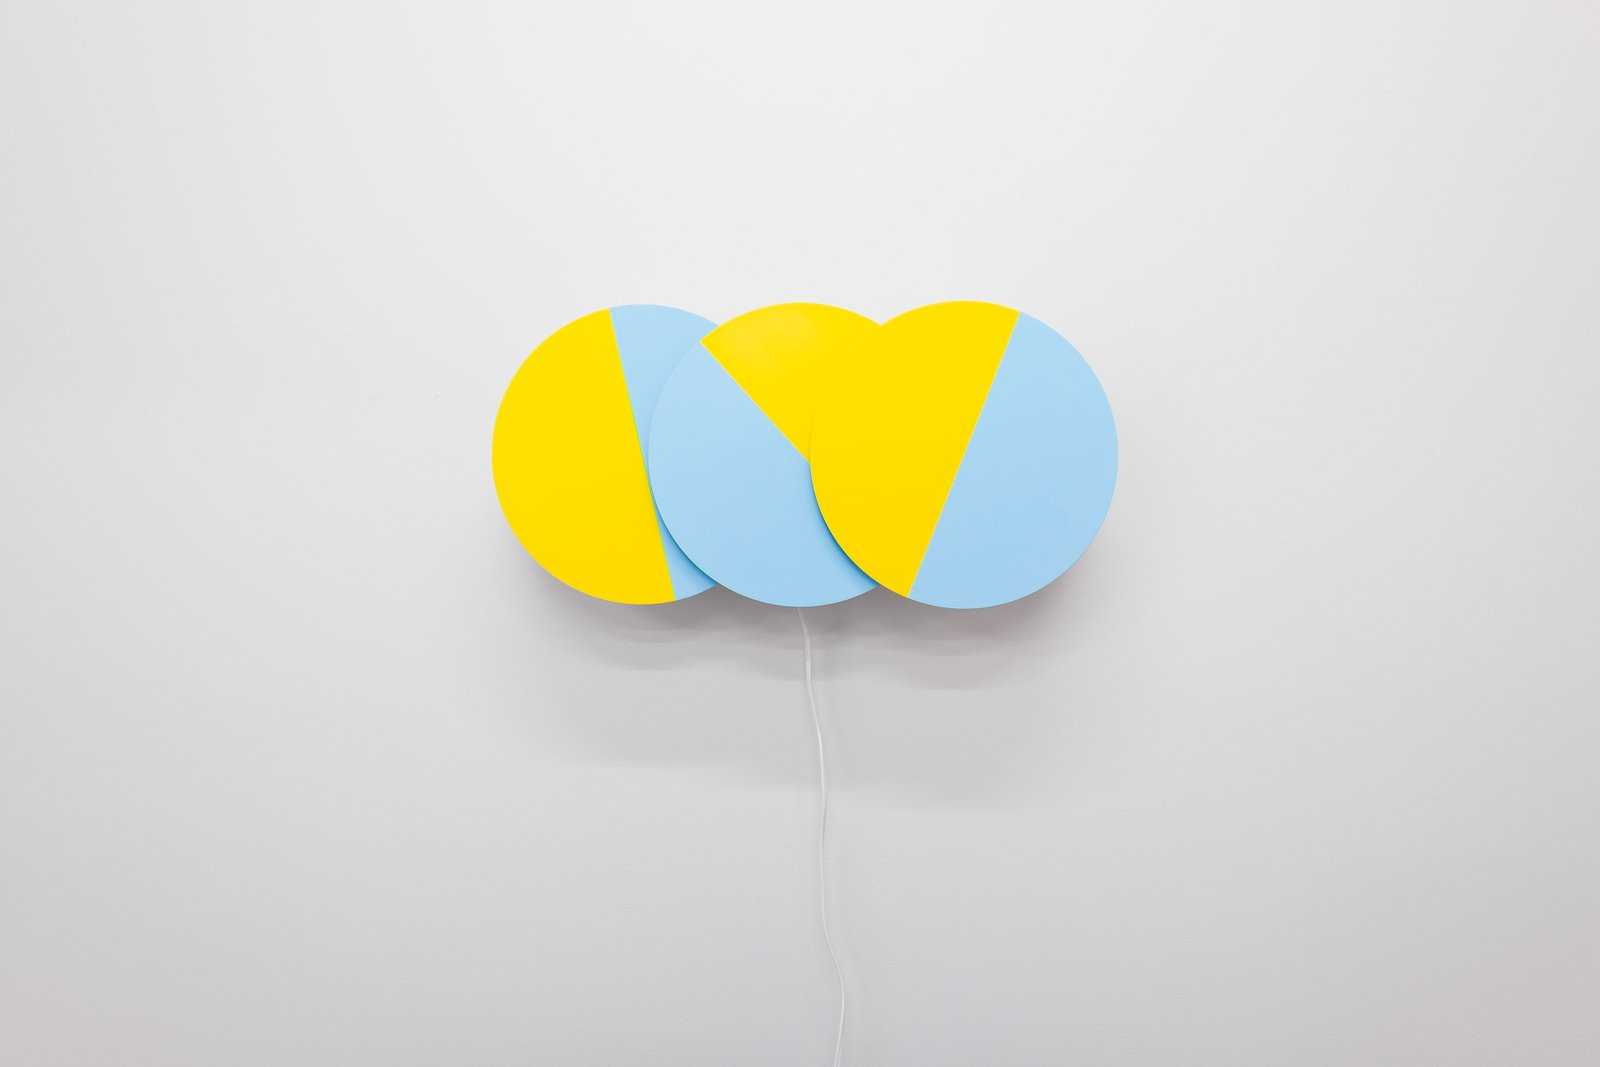 Karel Martens, Three Times (in Blue and Yellow), 2016. Painted aluminum, acrylic, 3D printed components, electronic timers, motors. 40x12x6 inches. Edition of 10. Dutch Graphic Design Master Karel Martens Opens His First Solo U.S. Exhibition - Photo 3 of 5